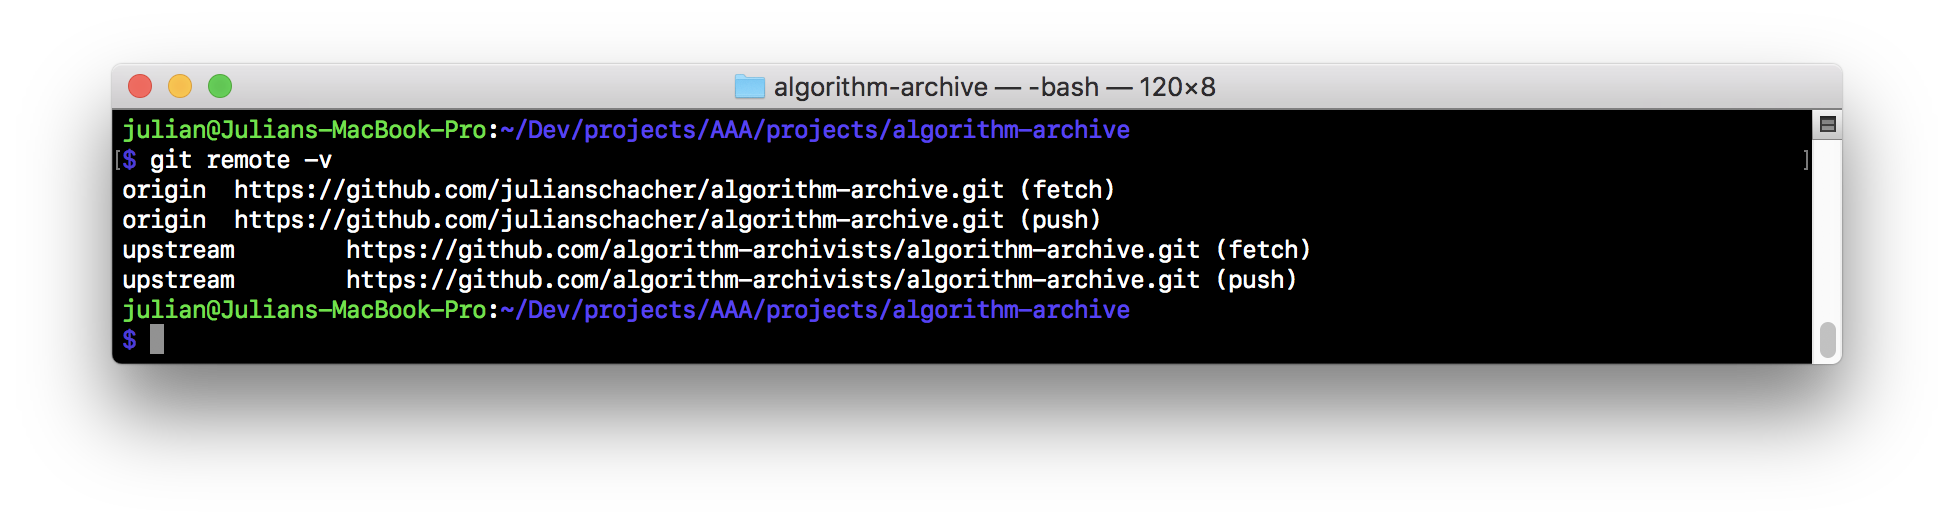 algorithm-archive local git remote with upstream